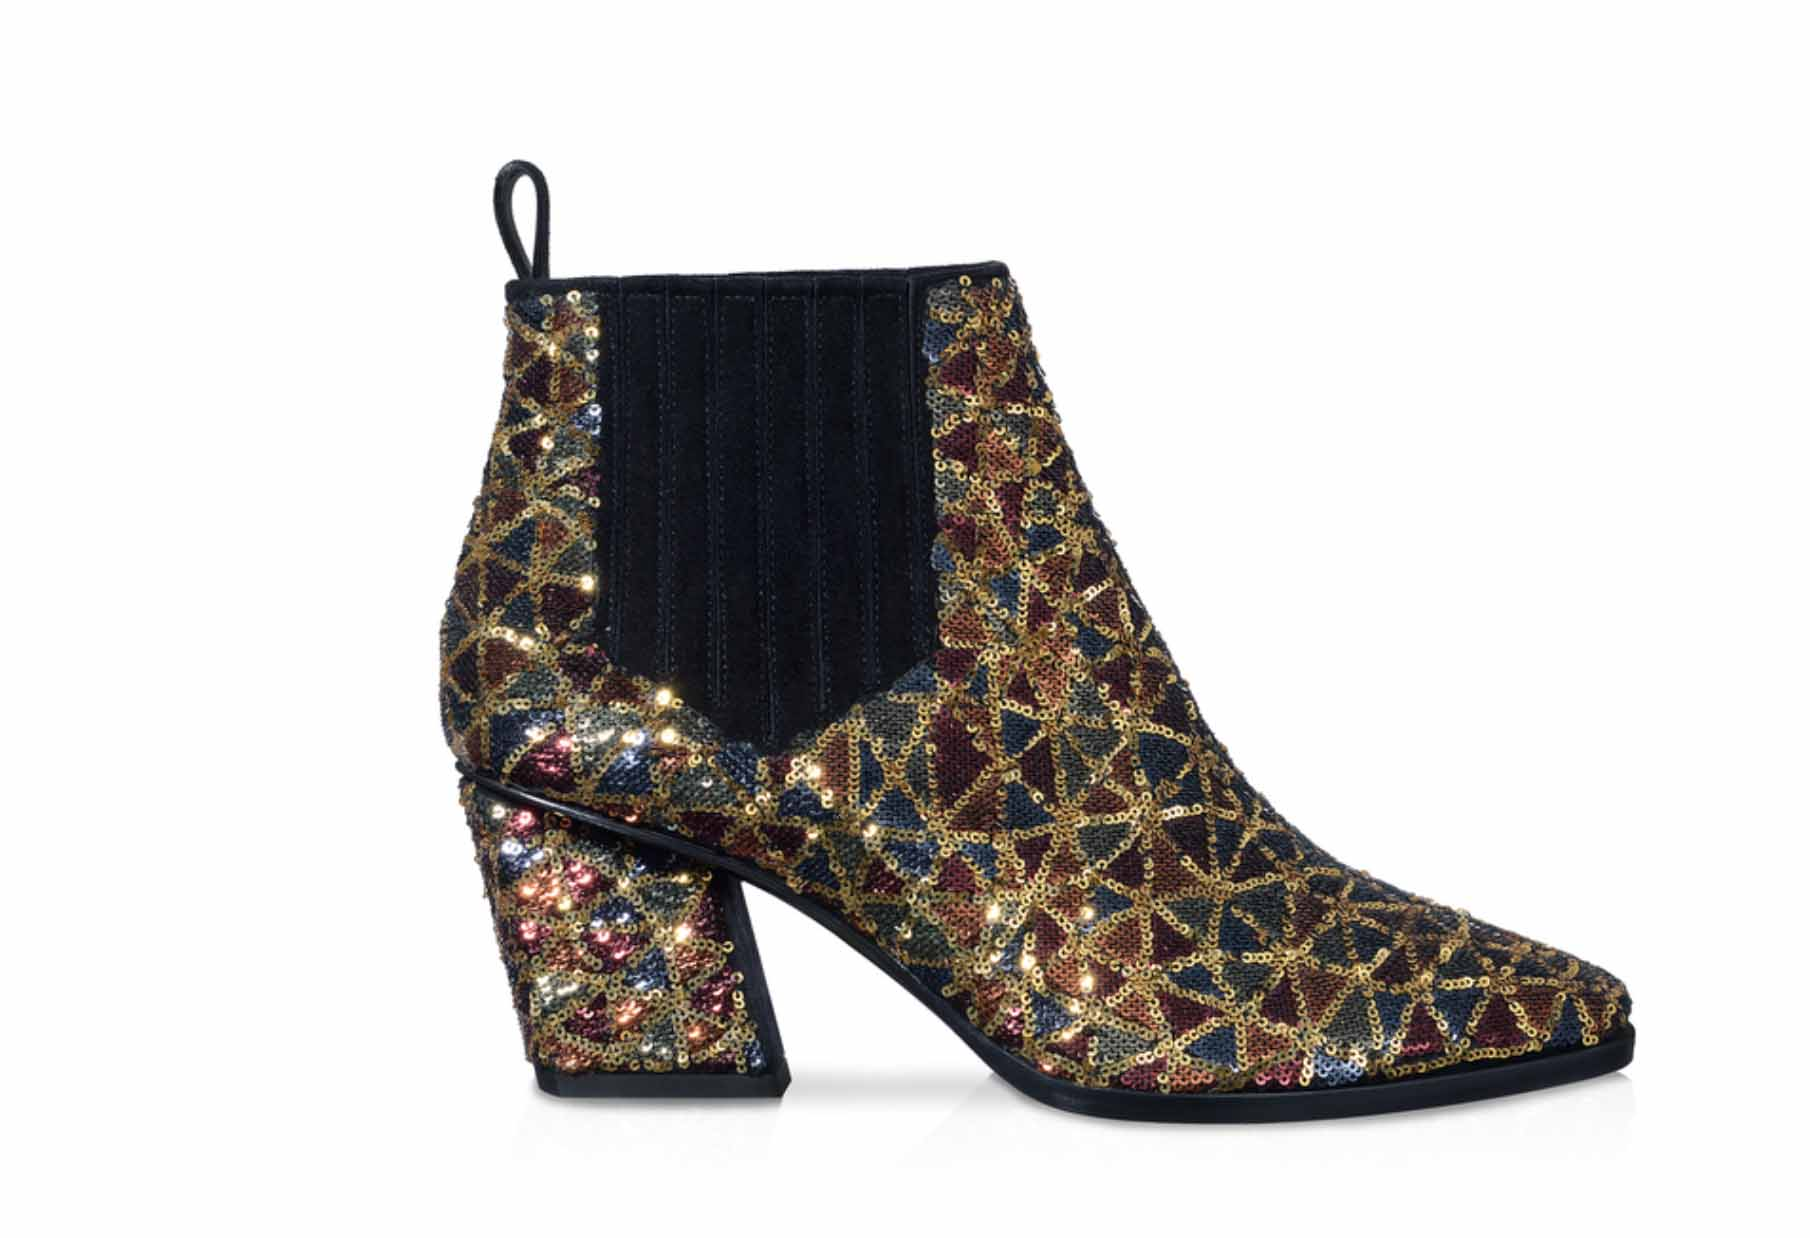 f1519a9ef5f Skyscraper Glitter Ankle Boots in Silk Satin and Sequins - Indonesia ...